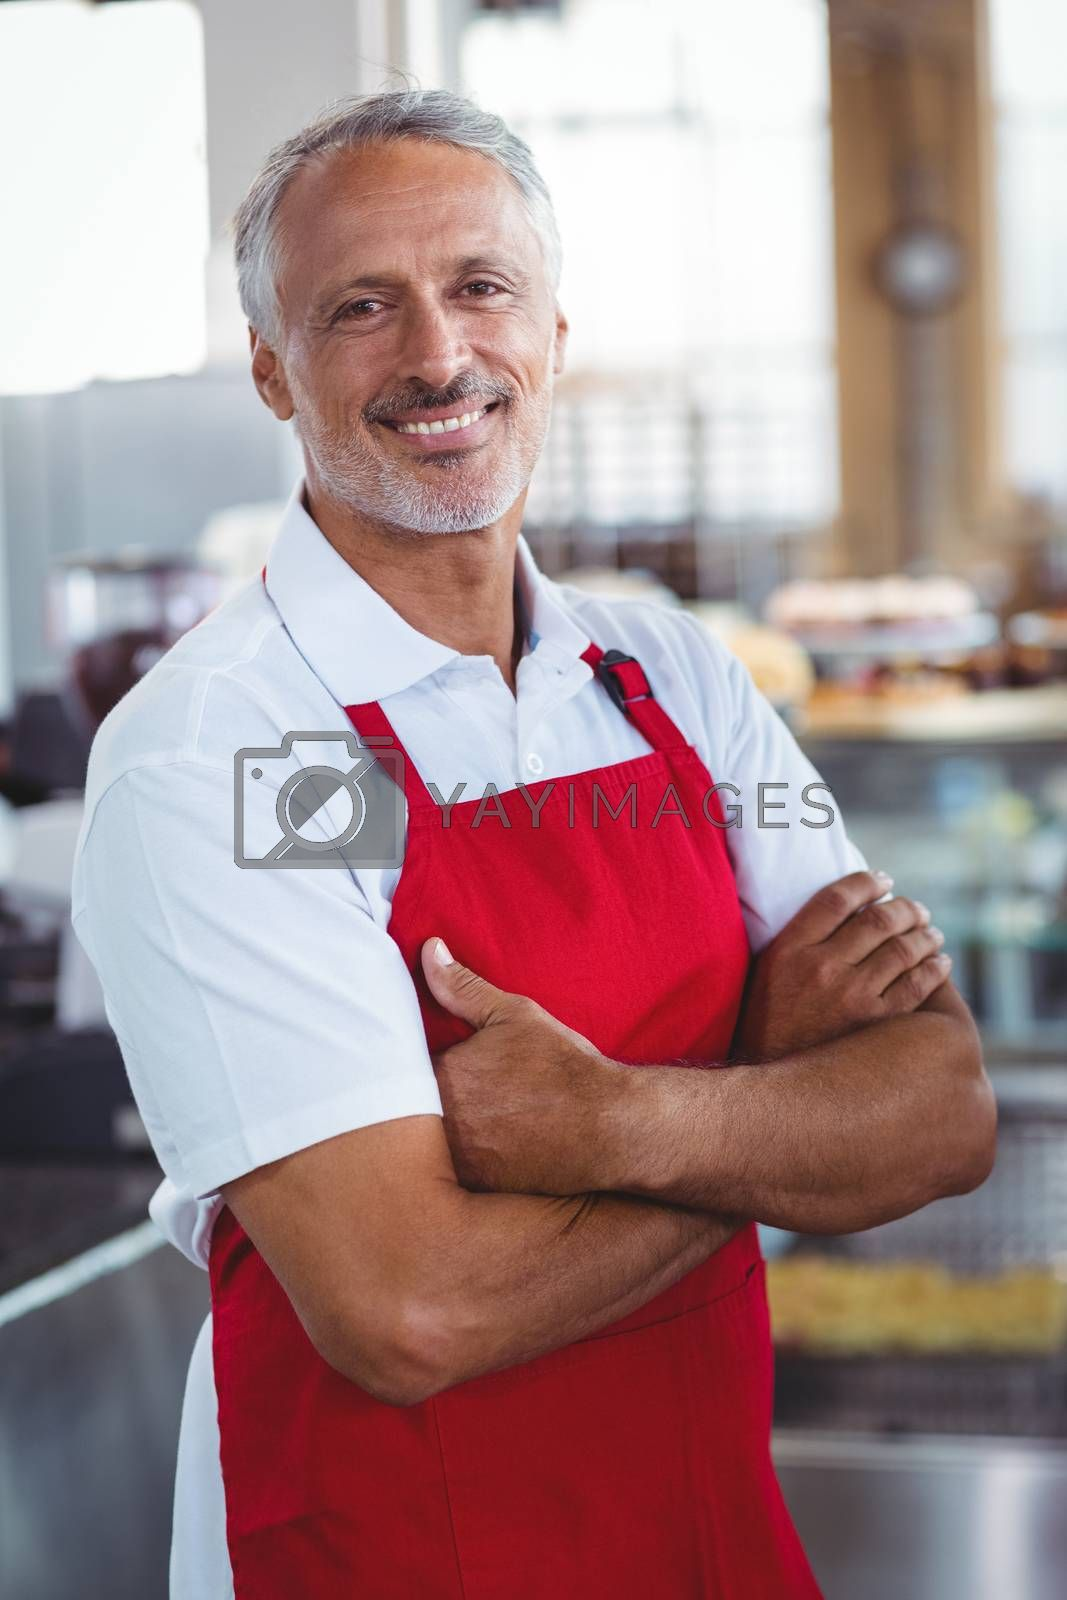 Royalty free image of Happy barista smiling at camera with arms crossed by Wavebreakmedia